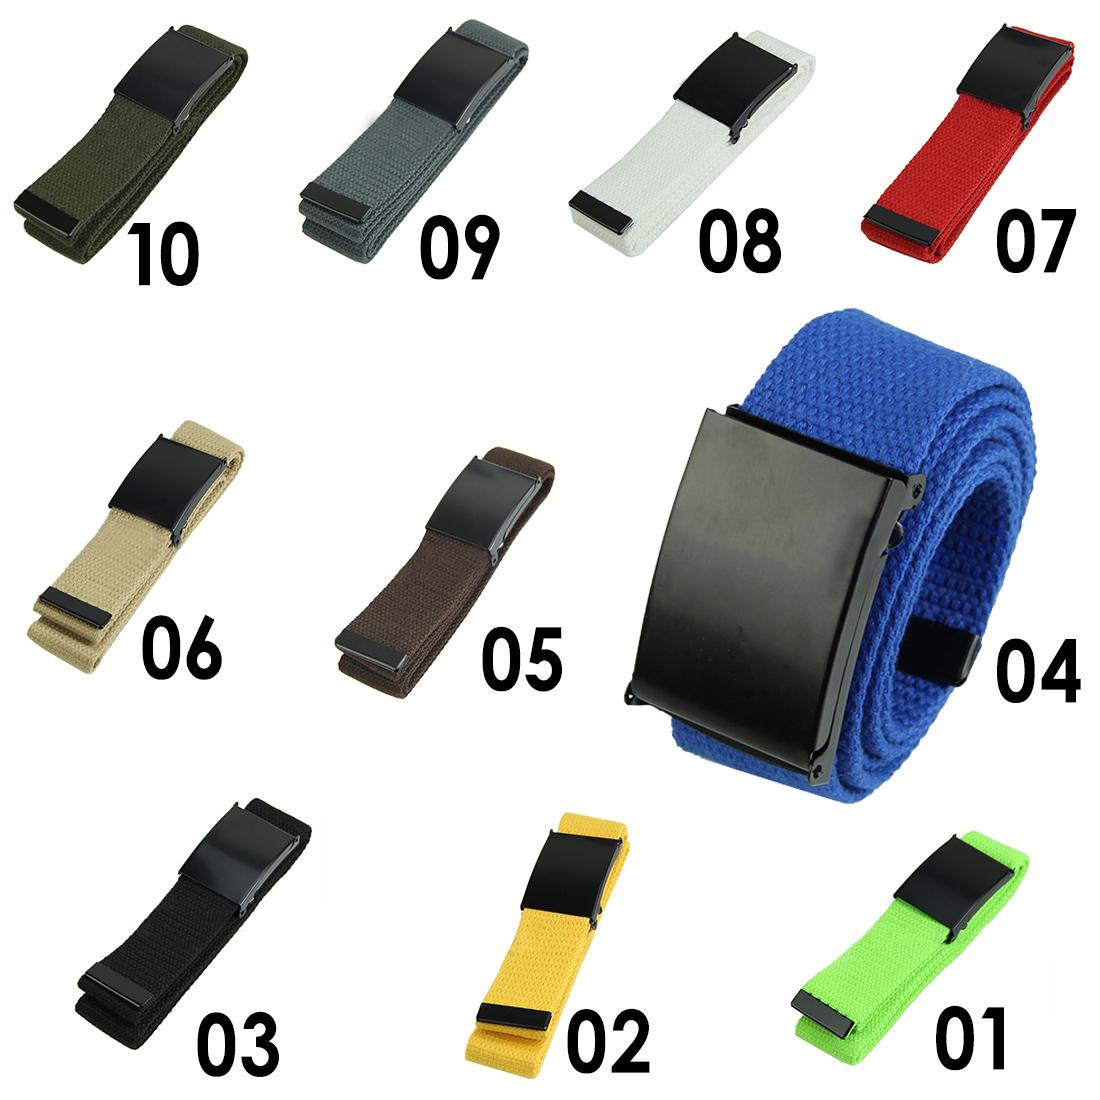 Fashion 2 Cotton Canvas Metal Buckle Belt Waist Waistband Cintos Men Women Unisex Boys Candy Colors Plain Webbing Accessories